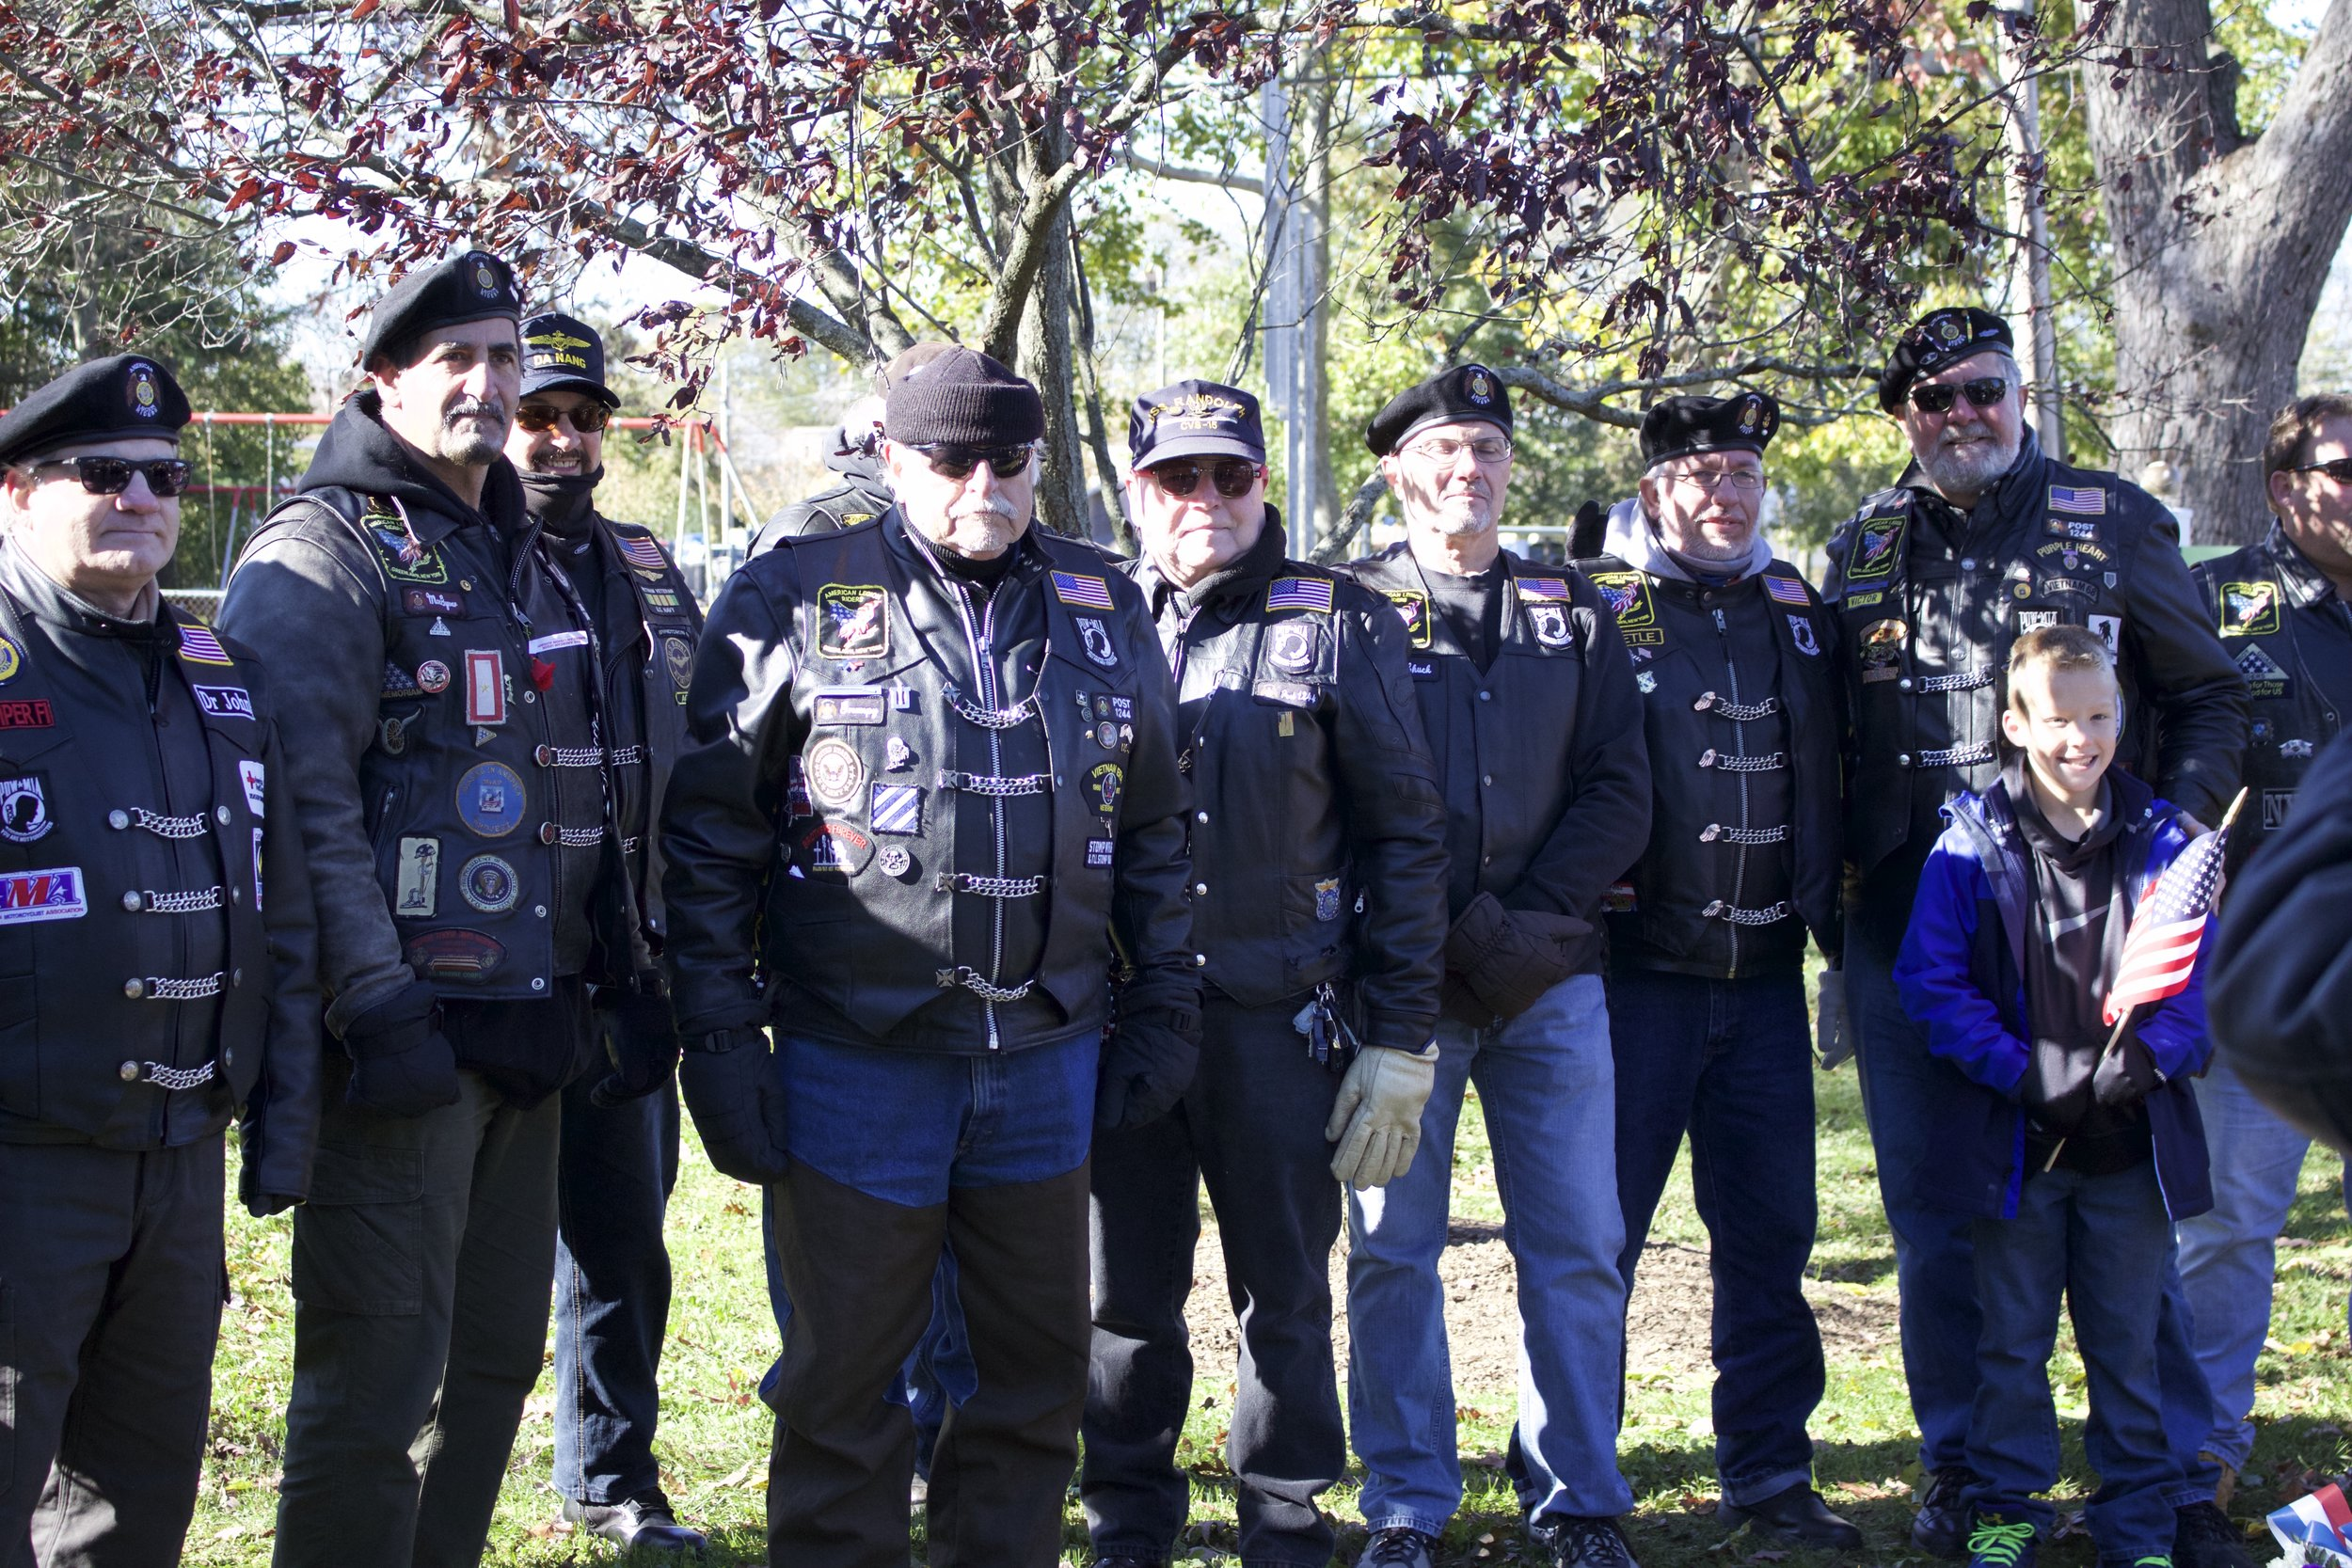 American Legion Riders of the Greenlawn Post 1244 attend the annual Veterans Day Ceremony at the Greenlawn Memorial Park.   Long Islander News Photo/Janee Law